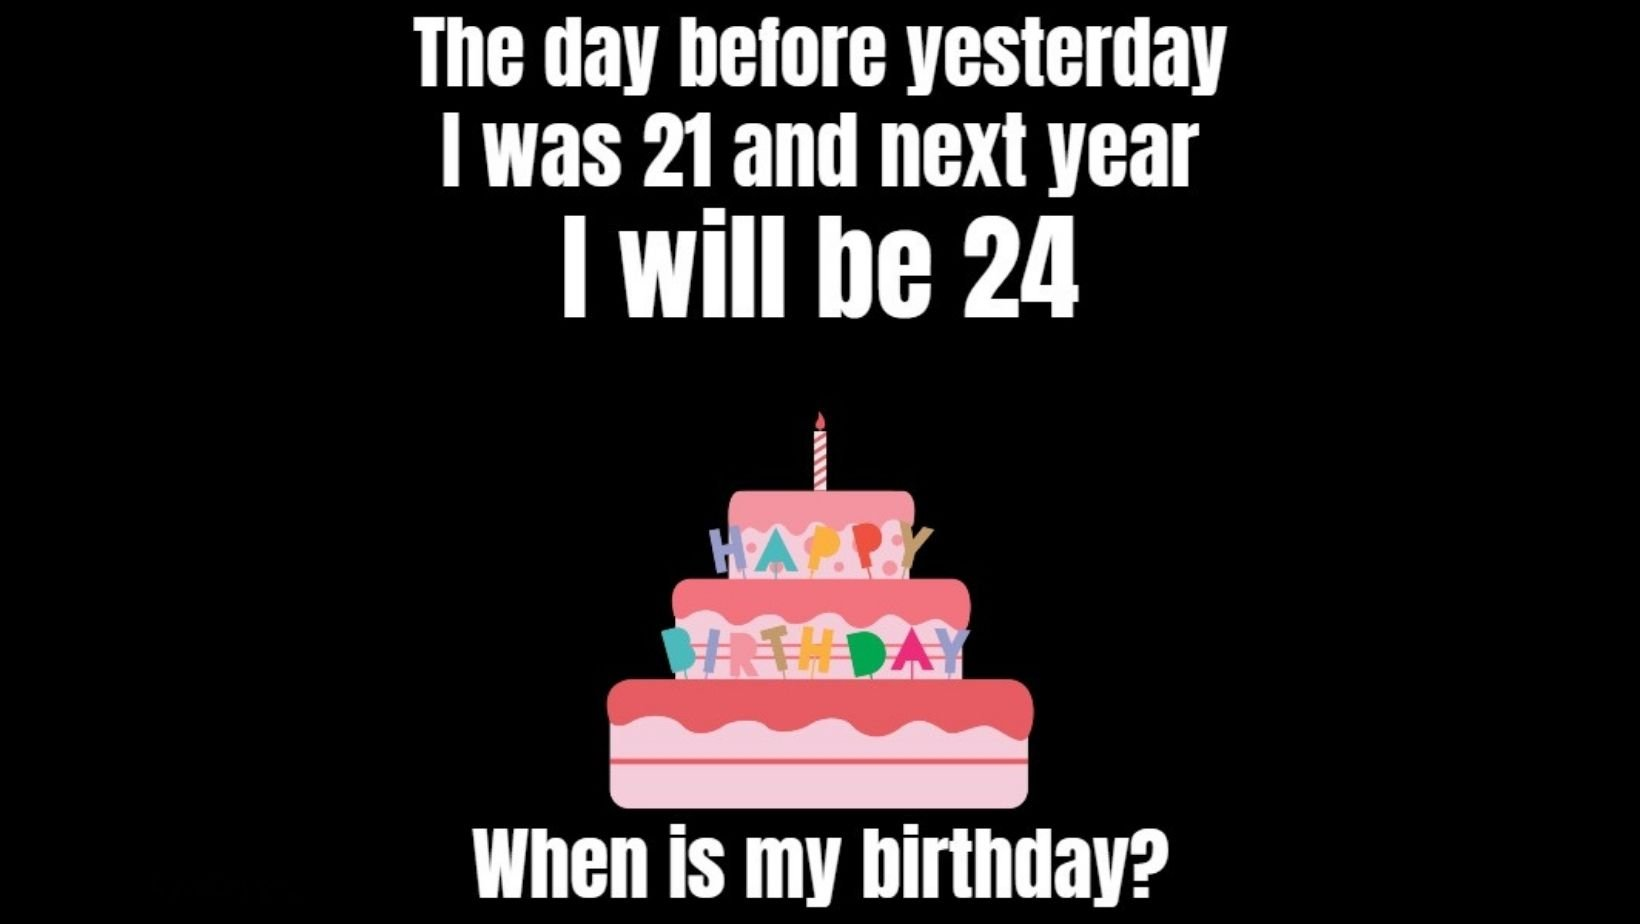 1 88.jpg?resize=1200,630 - Can You Solve This Mind-Boggling Birthday Riddle?